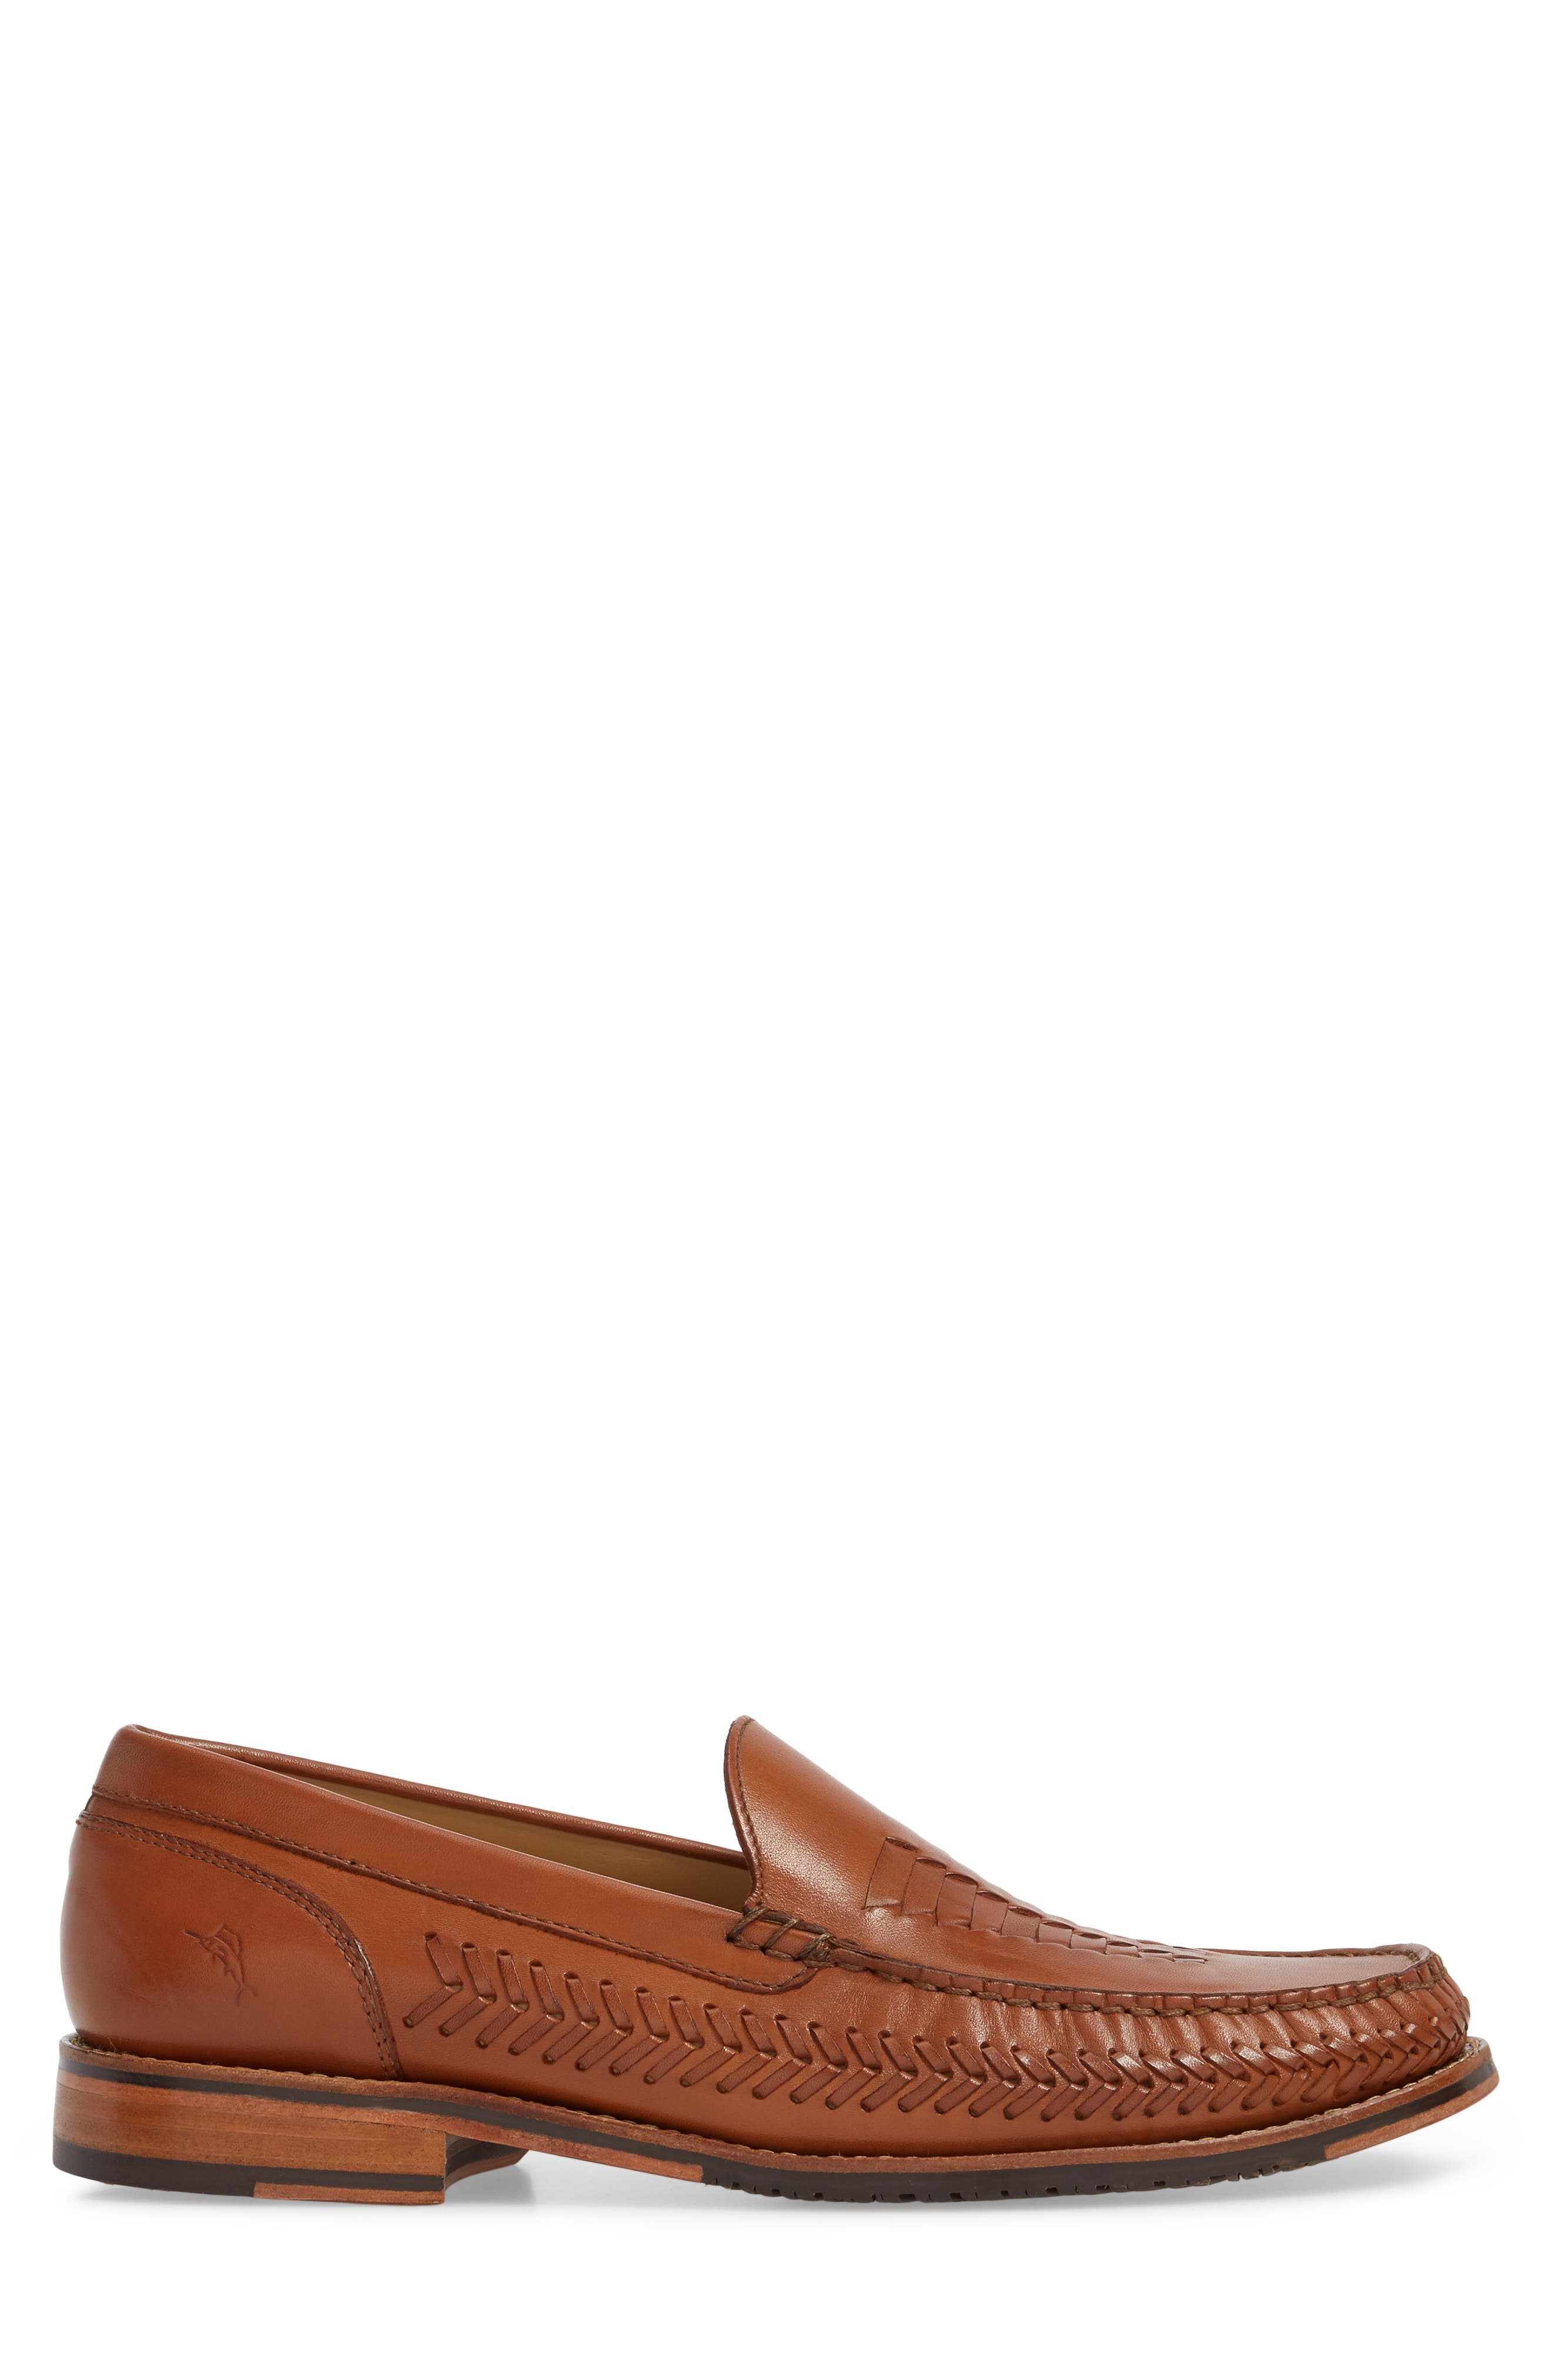 Hasslington Woven Venetian Loafer,                             Alternate thumbnail 3, color,                             TAN LEATHER